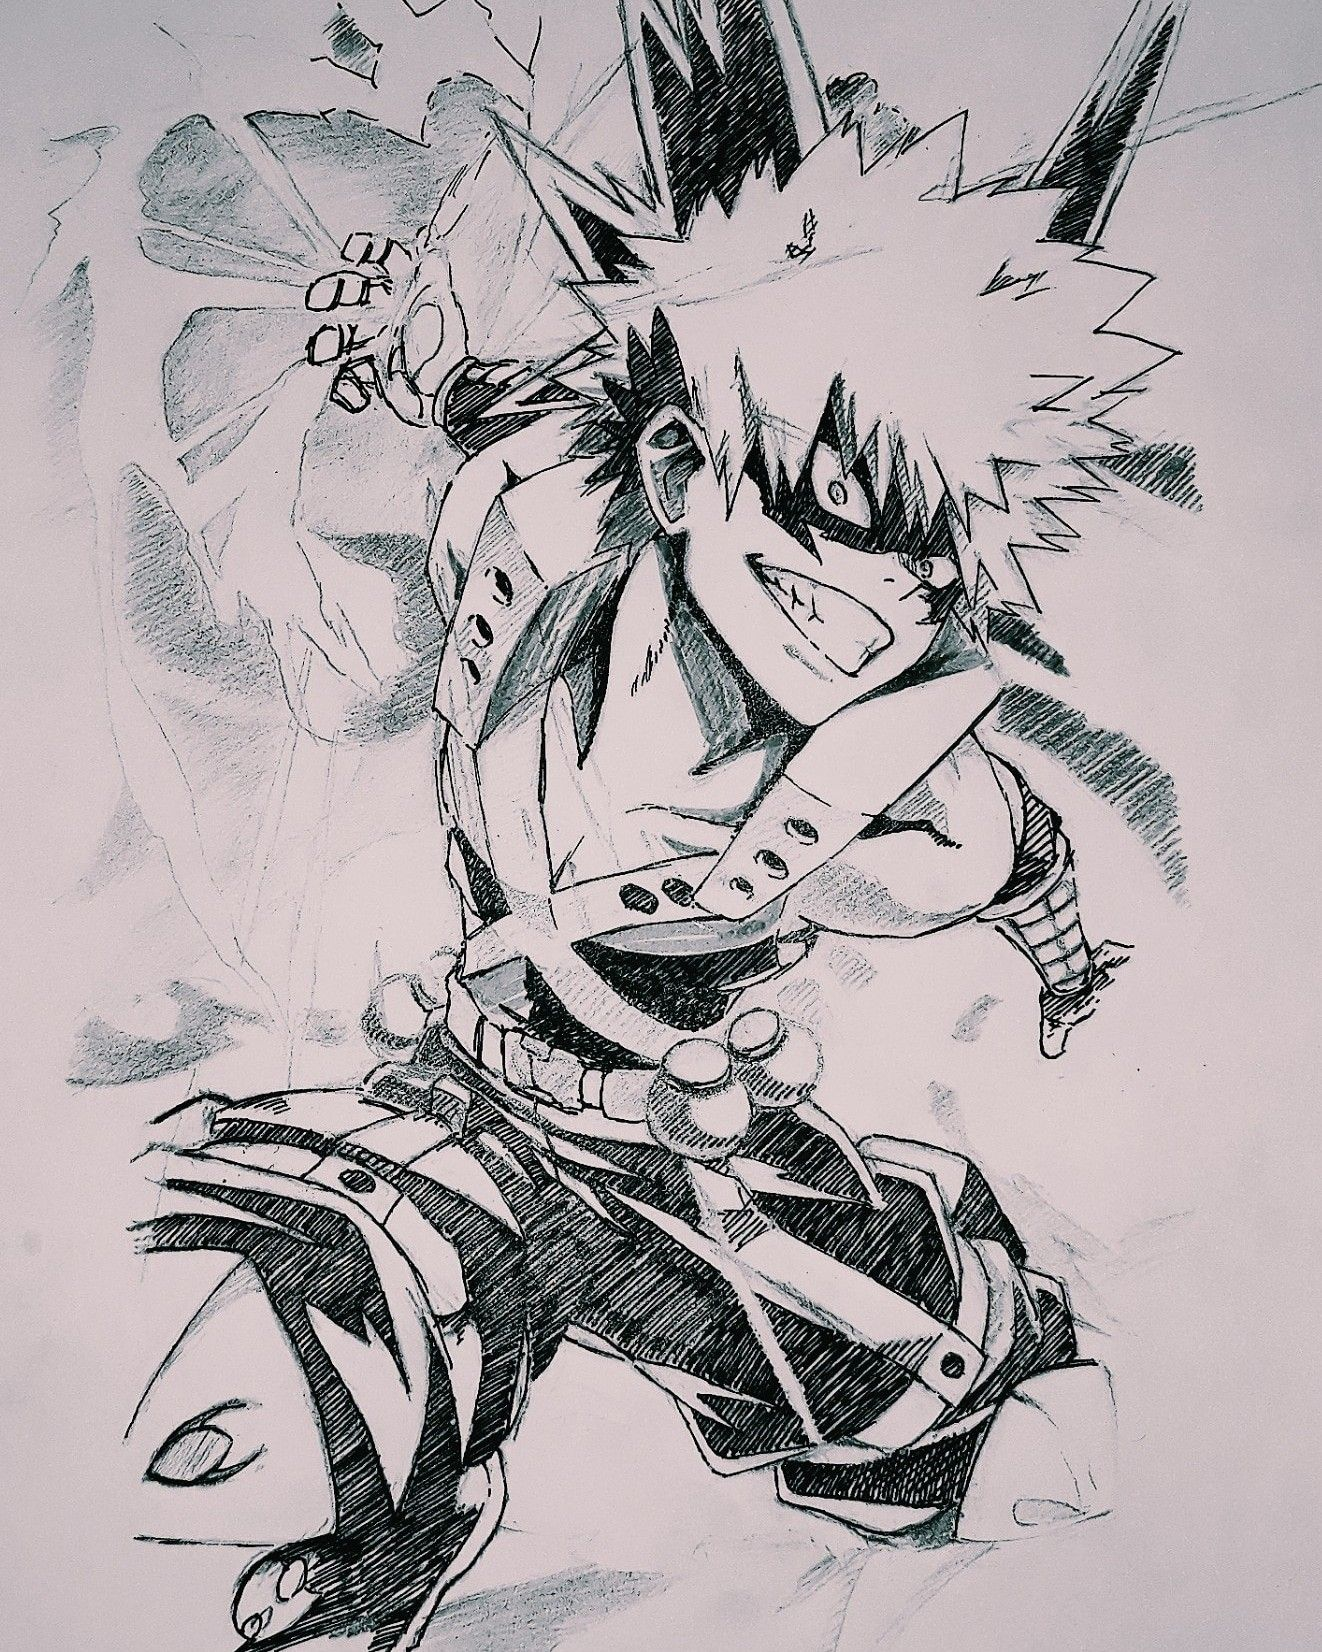 Bakugou Katsuki By Yaumil Putra Putput Putra Anime Character Drawing My Hero Academia Episodes Sketches